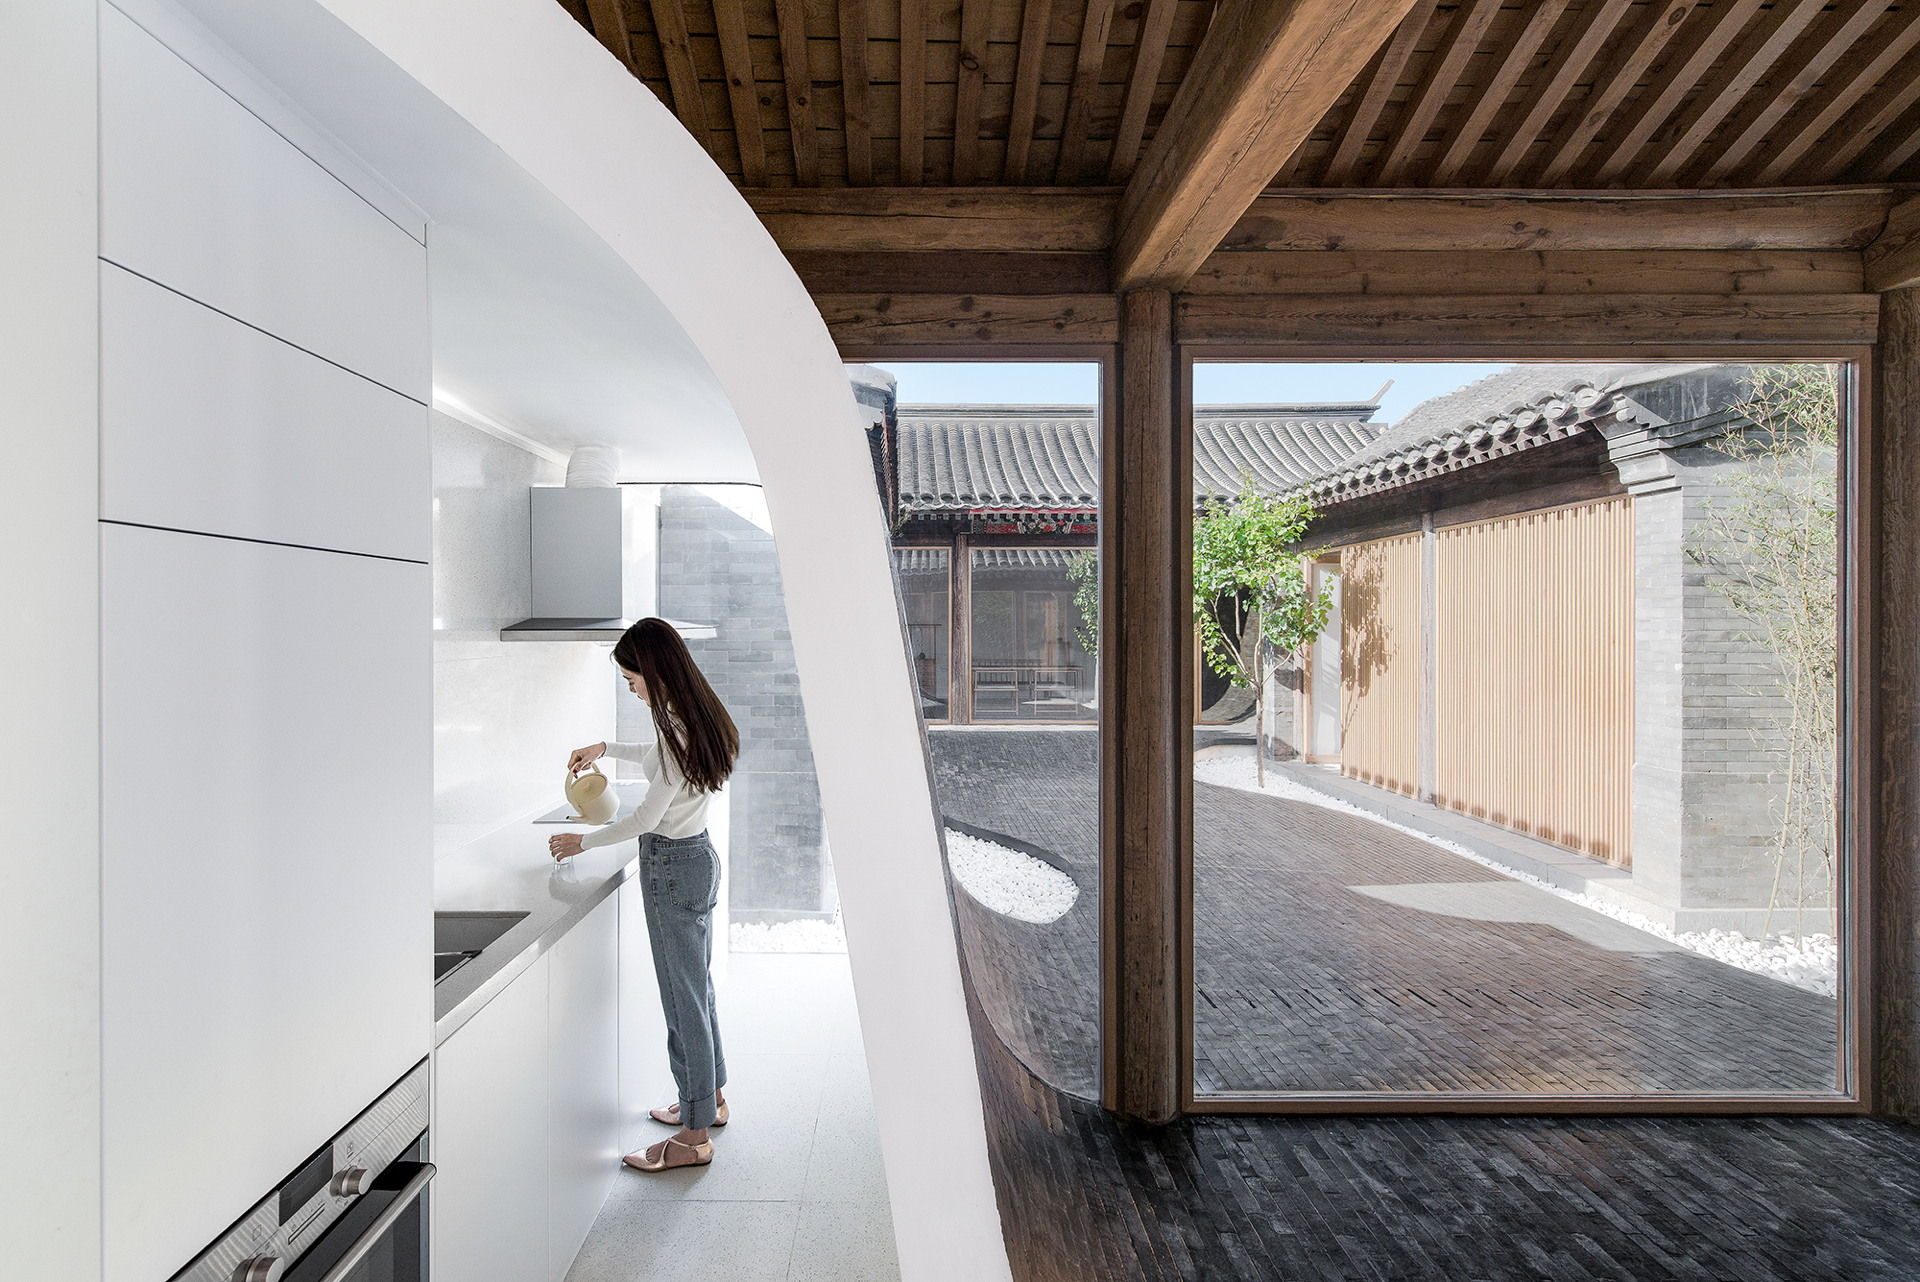 Archstudio: renovation of a siheyuan in Dashilar, Beijing